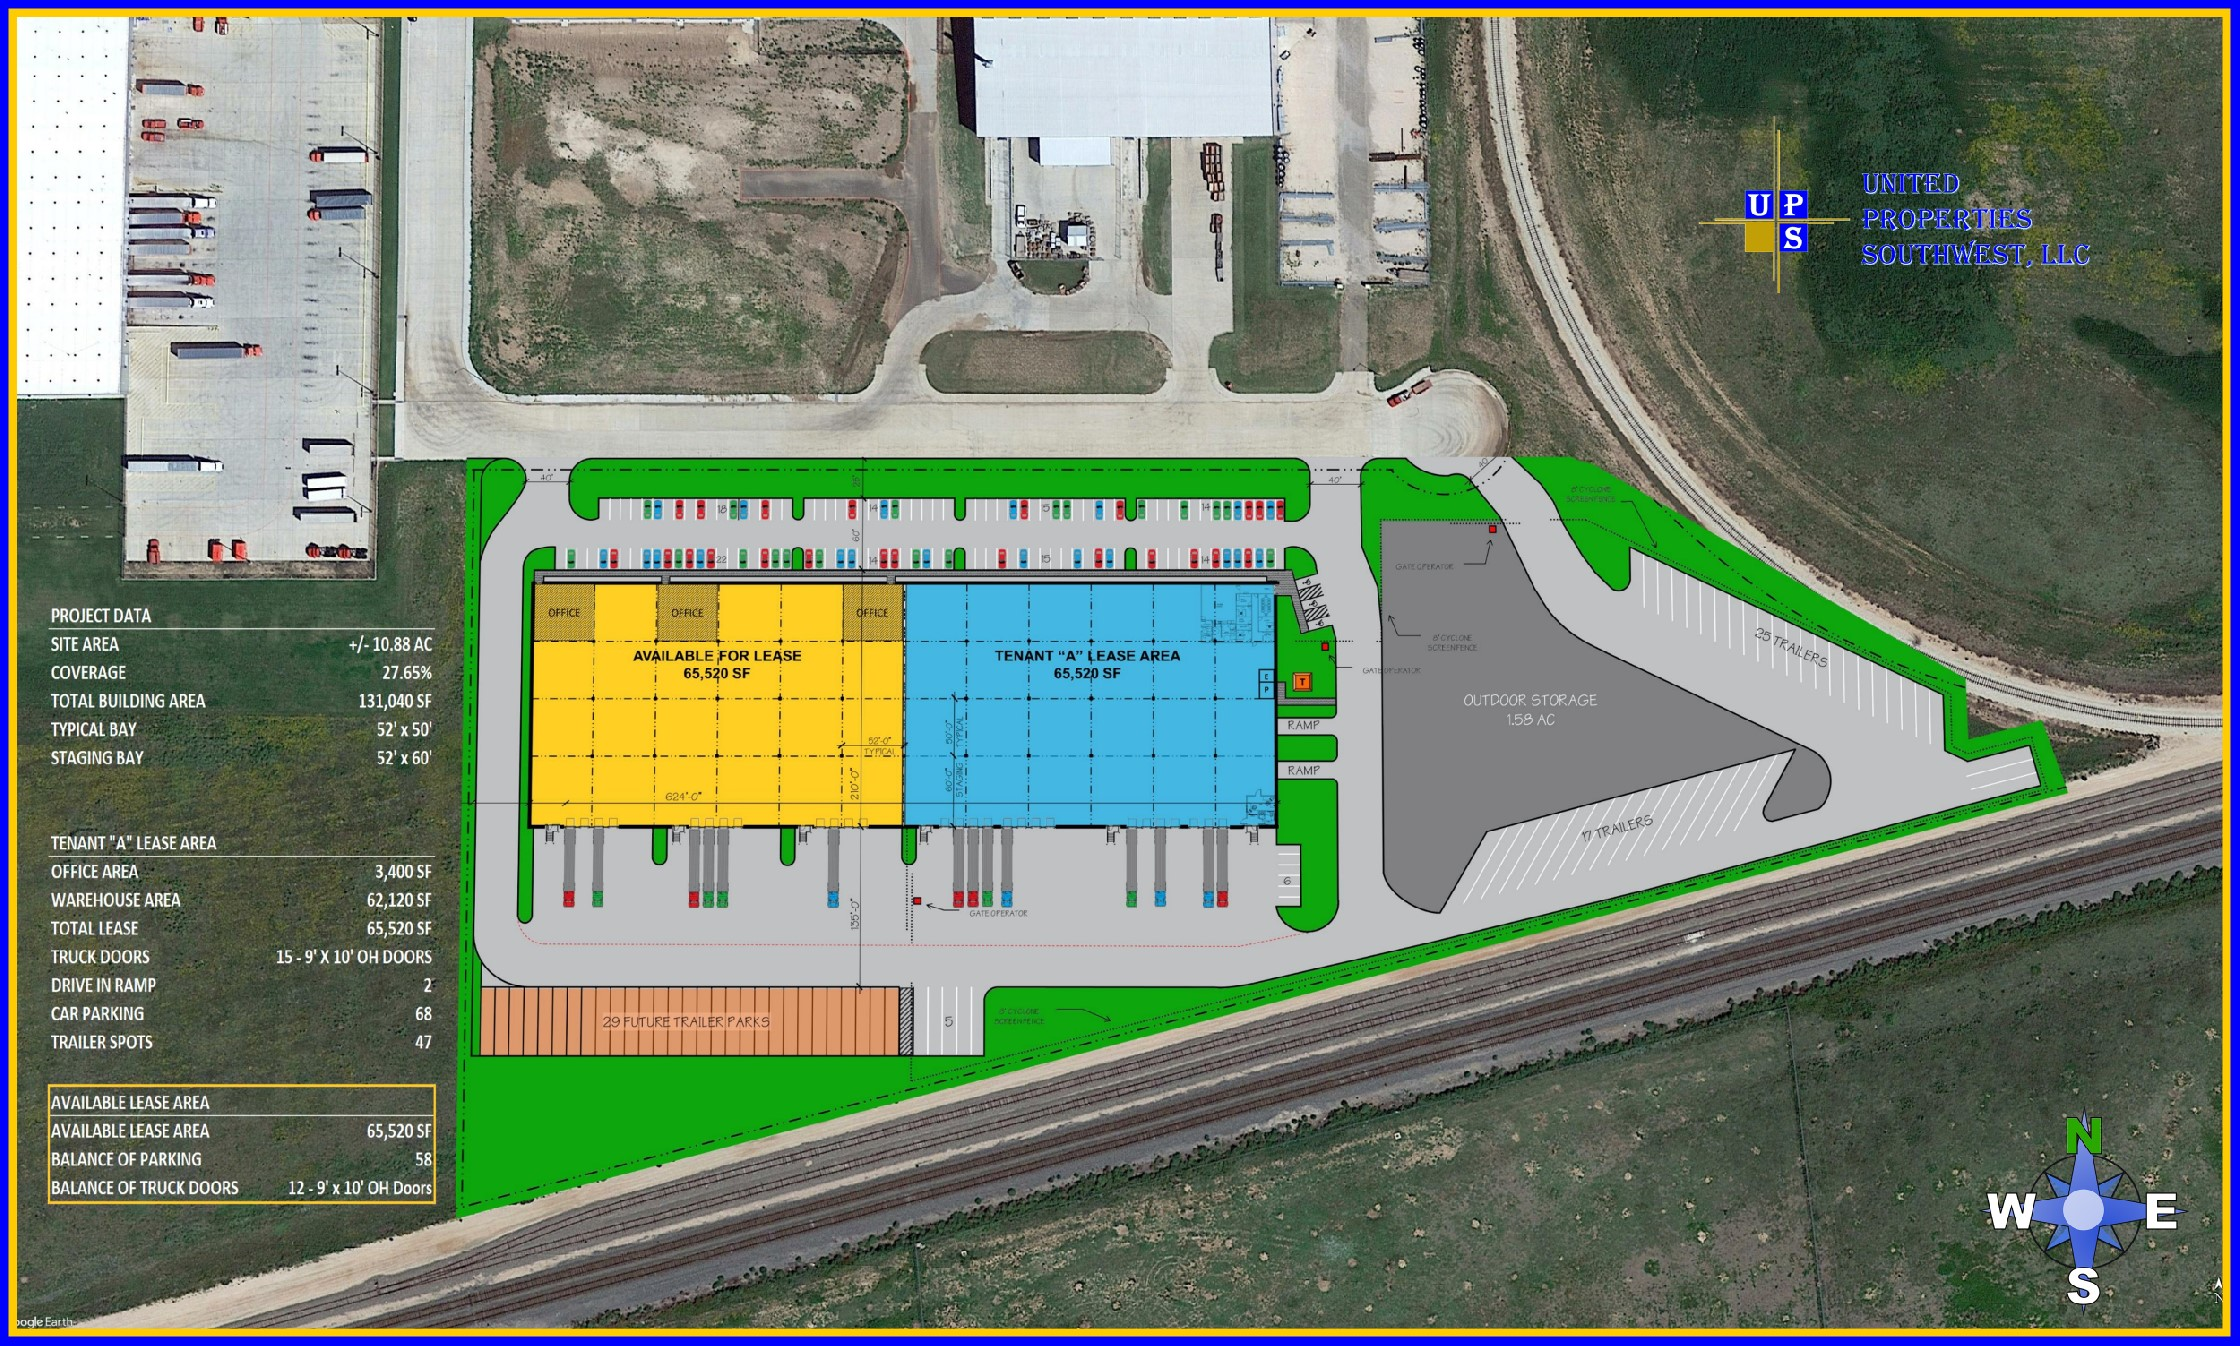 131,040 SF (65,520 SF Available) SATELLITE AERIAL